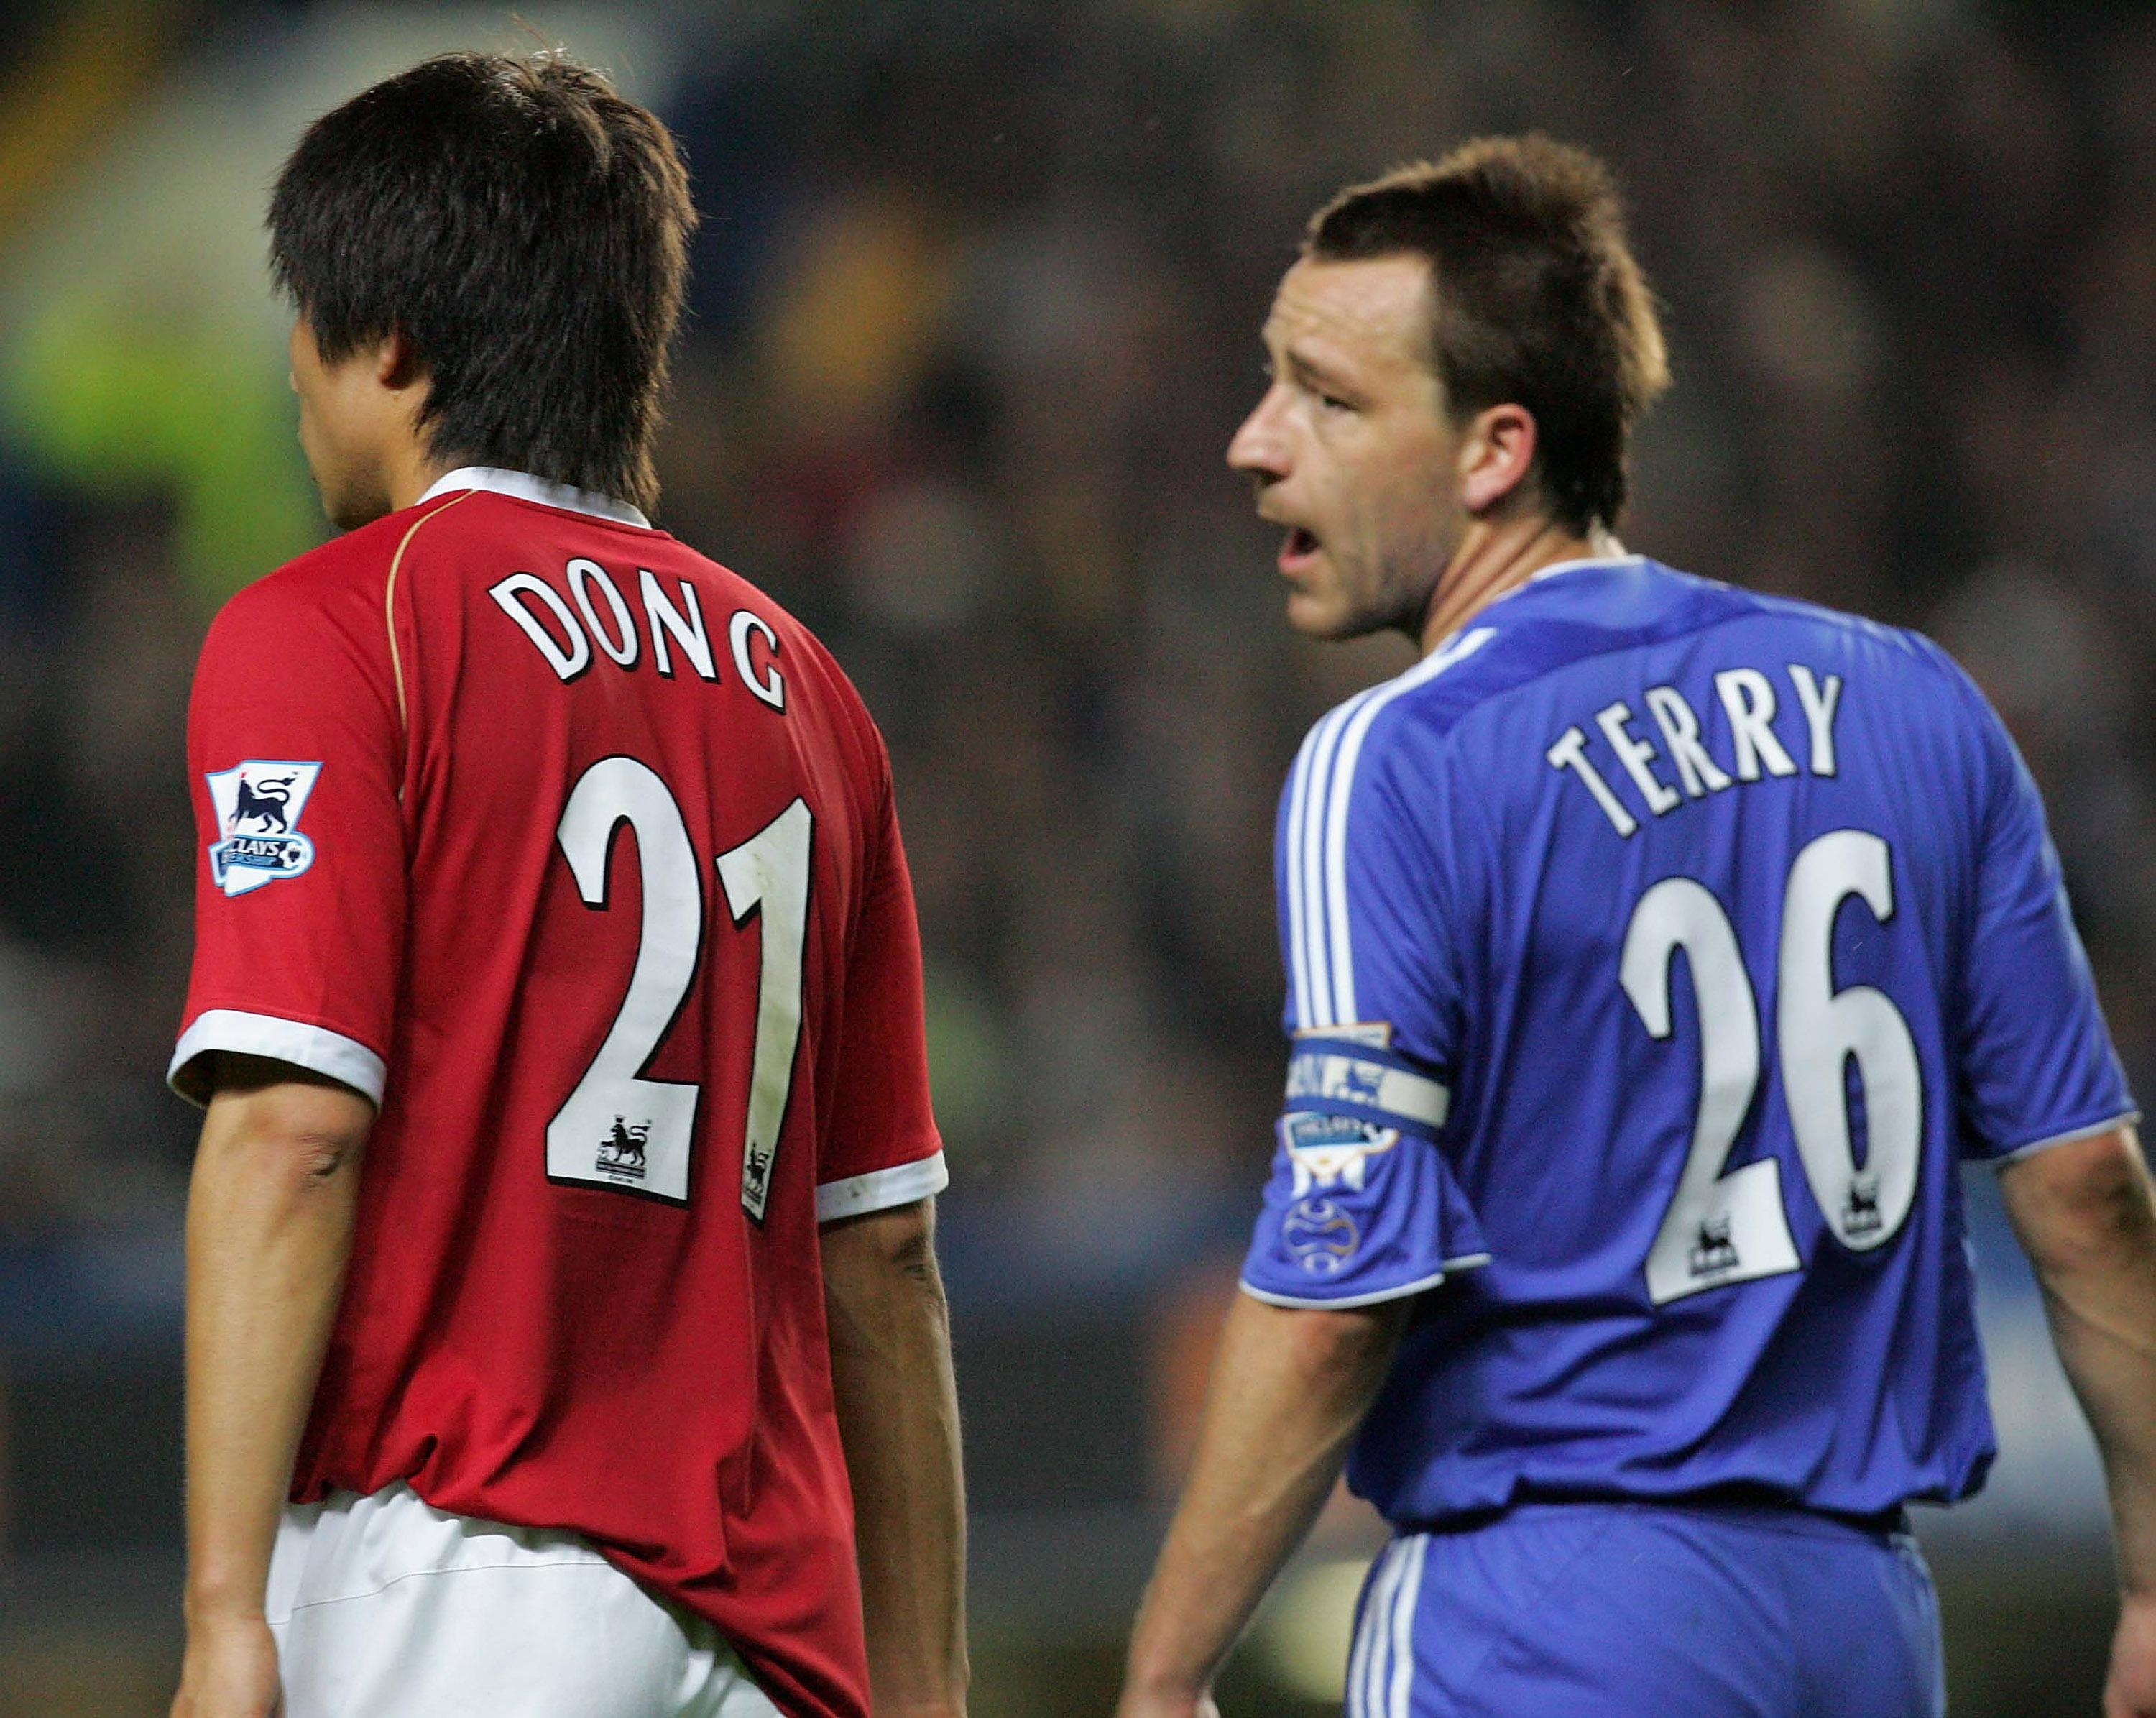 Two legends of the game…